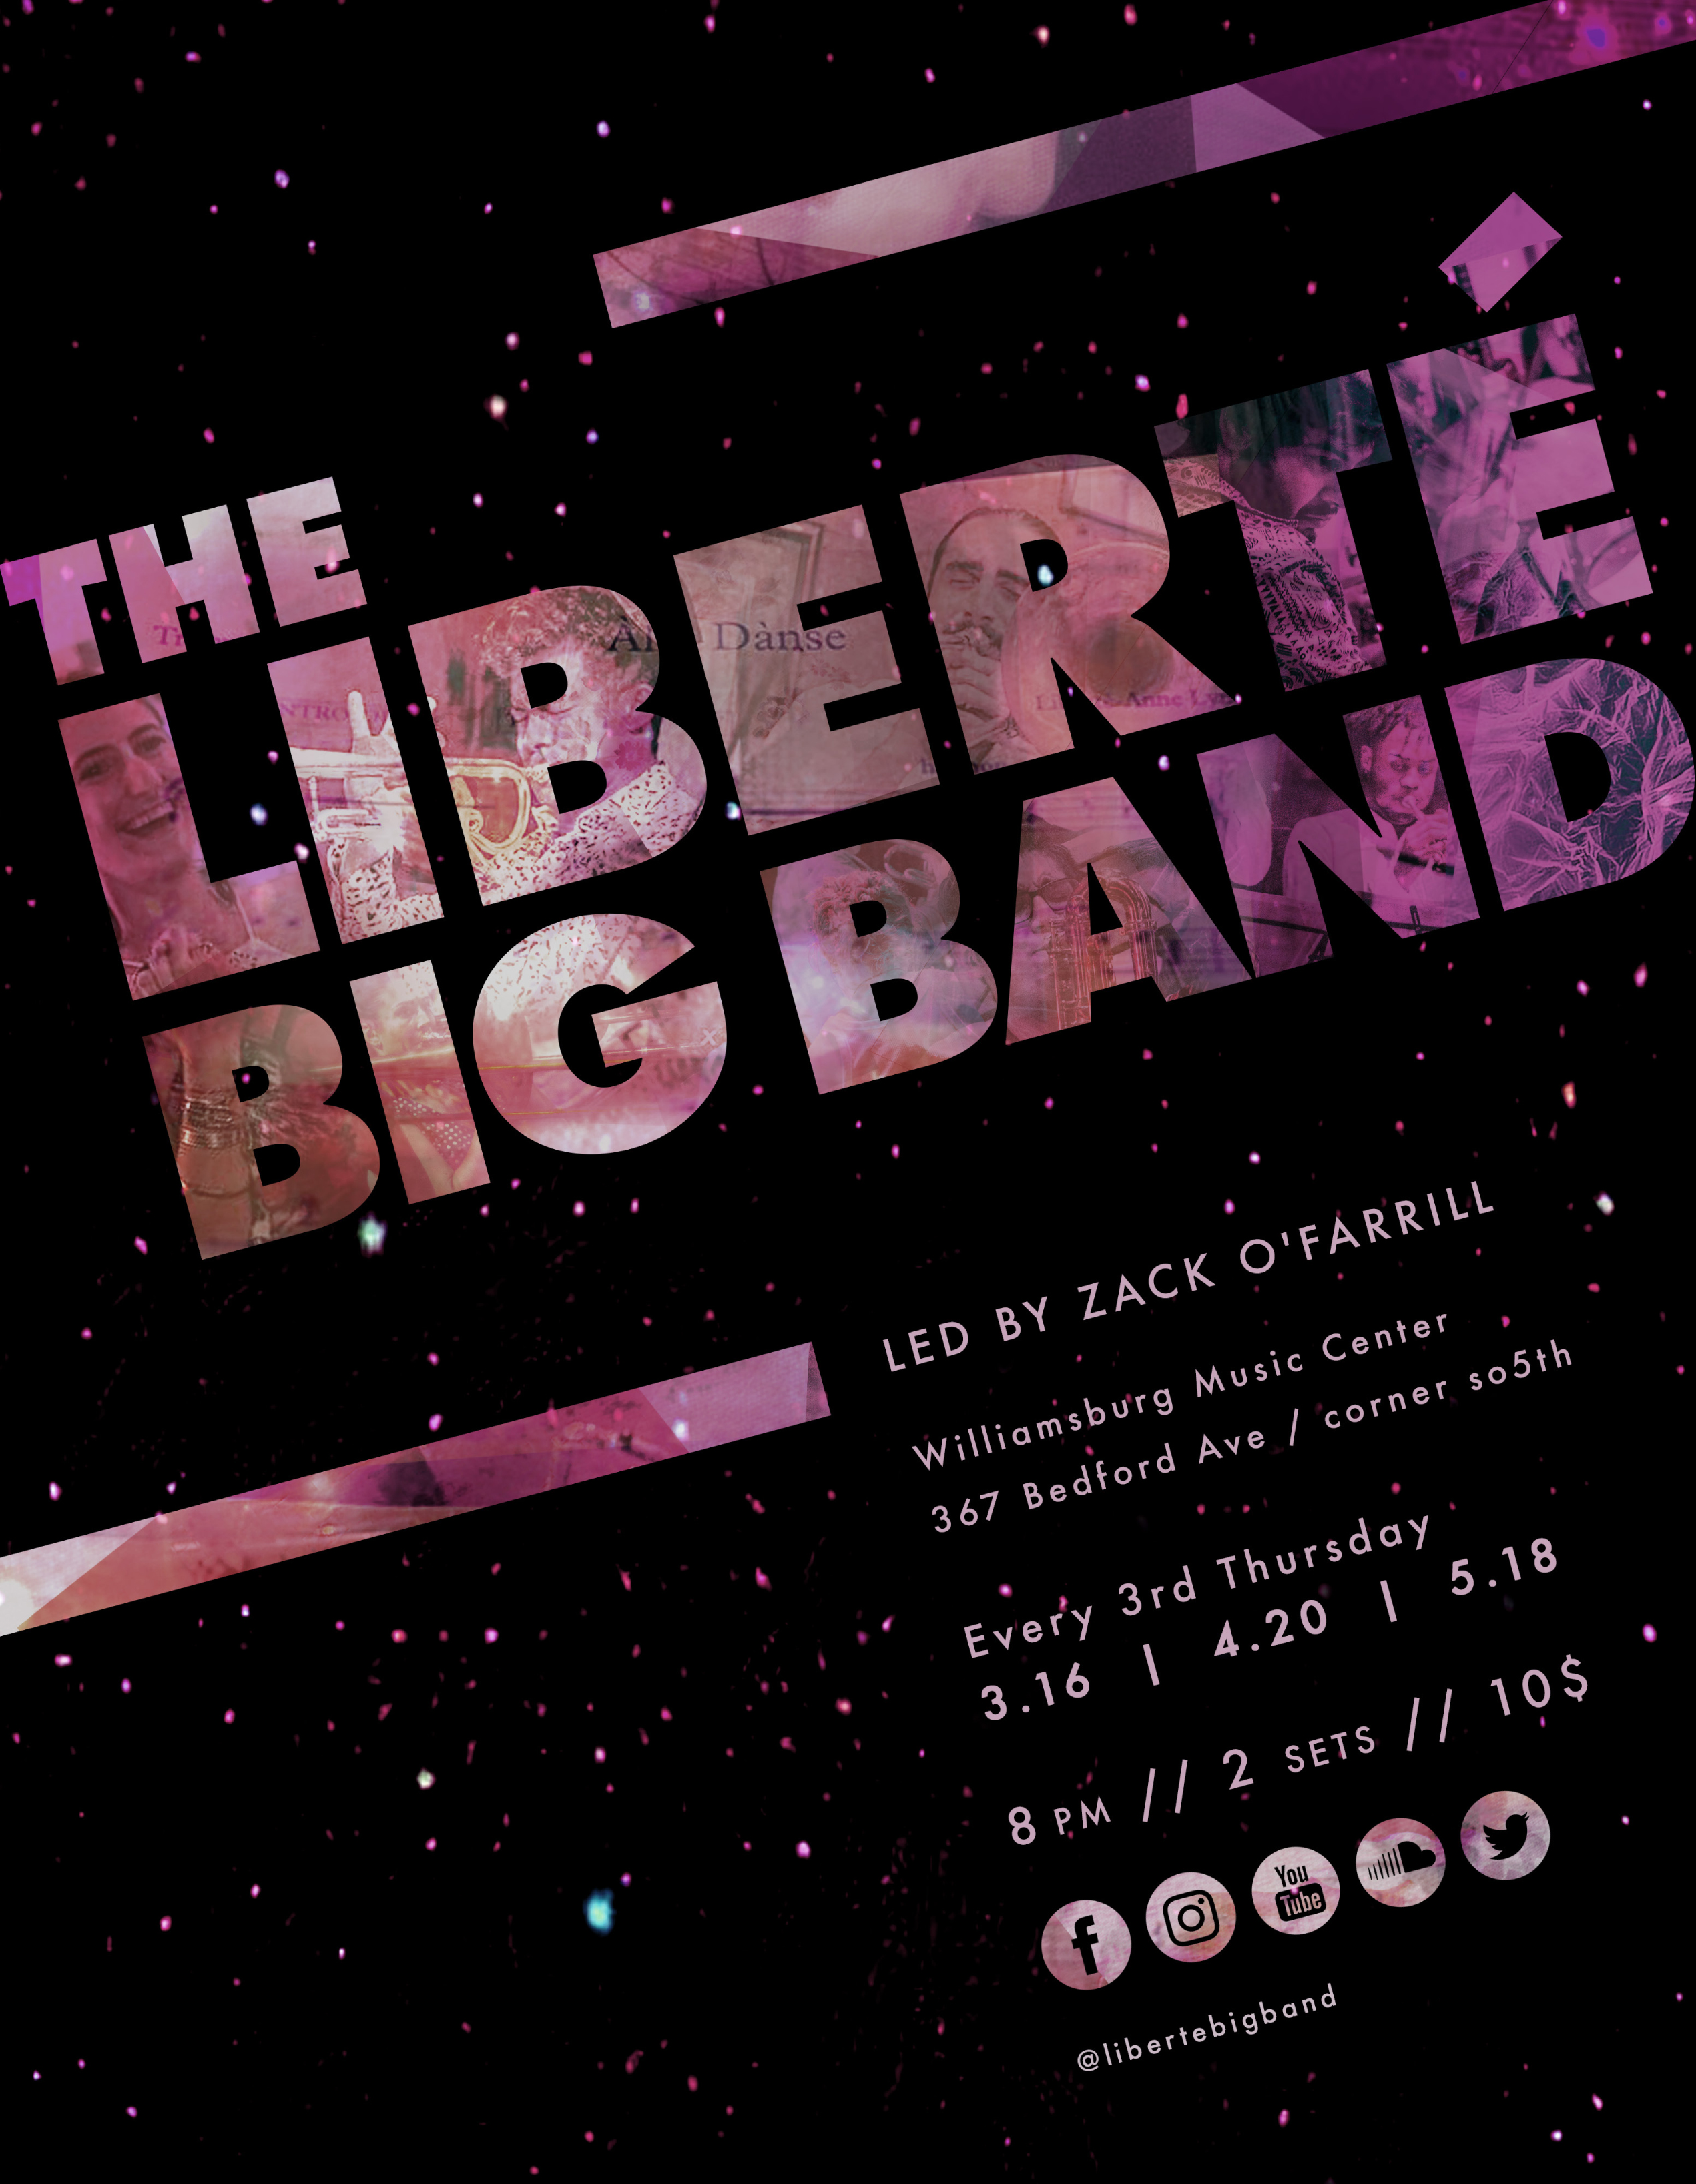 Liberte Big Band Returns to the Williamsburg Music Center 4/20